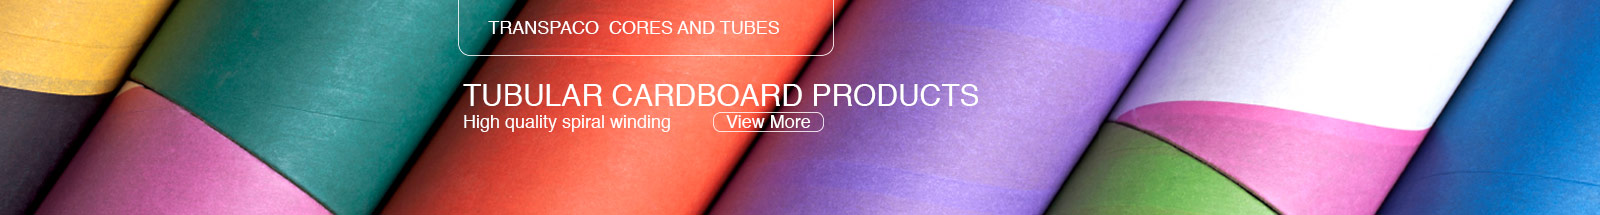 TRANSPACO CORES AND TUBE - Tubular cardboard products